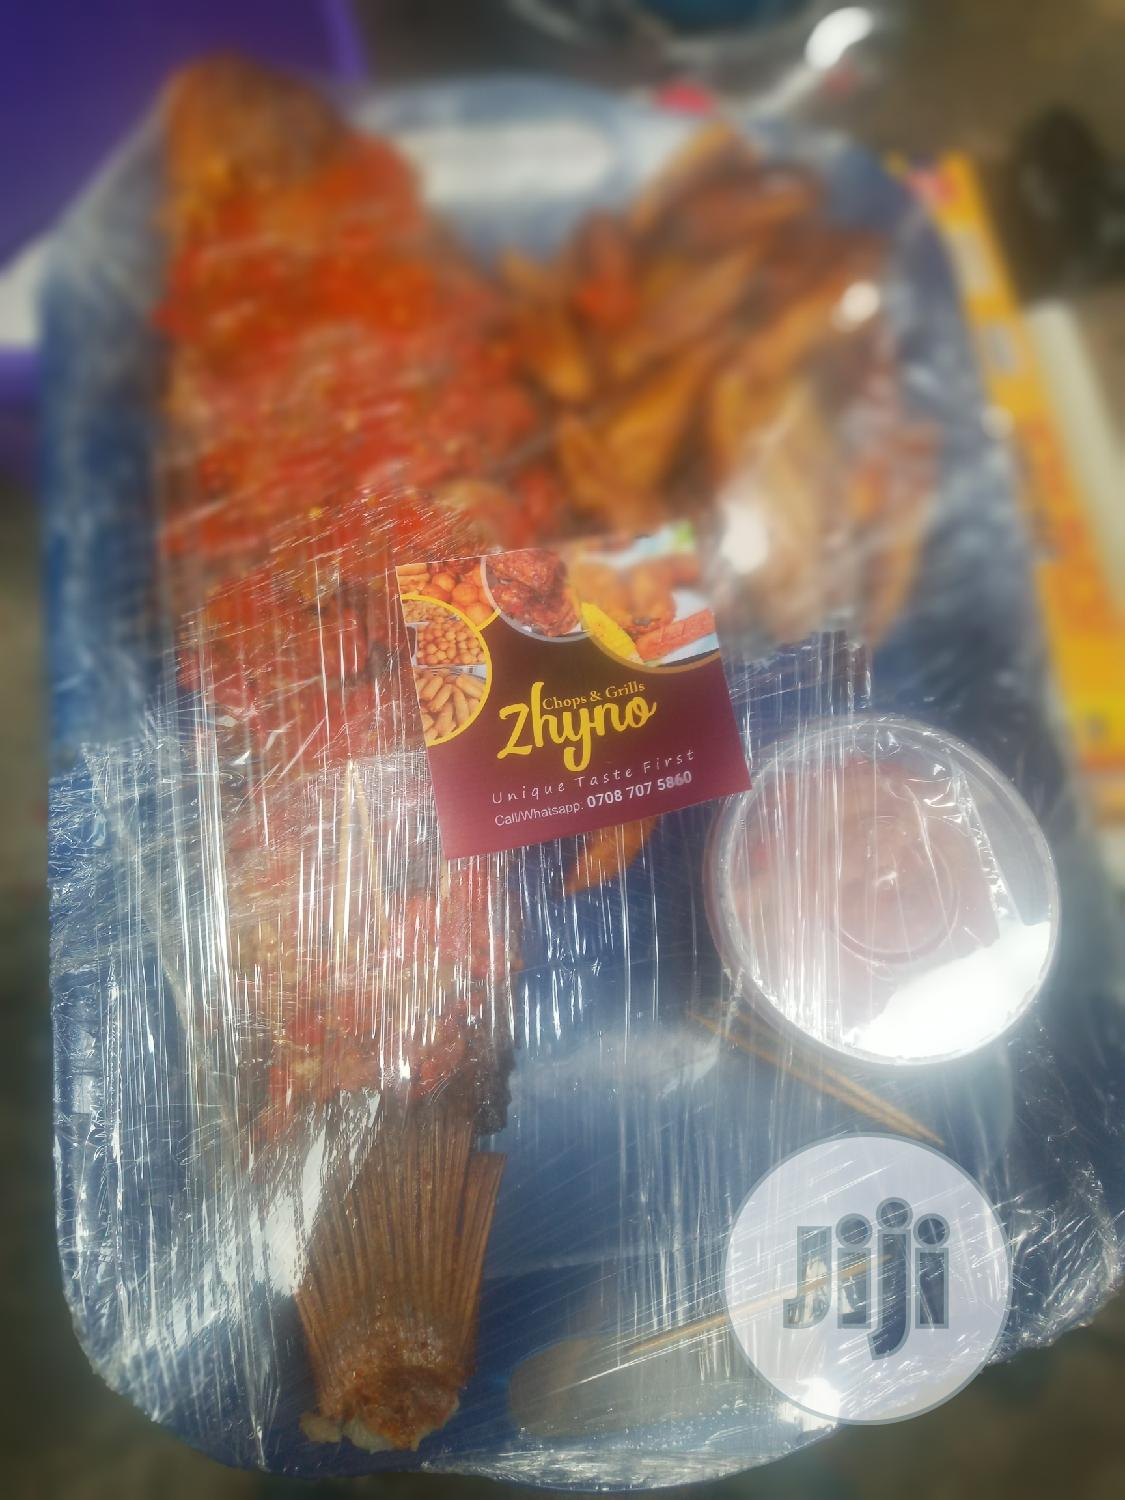 Archive: Zhyno Chops Grills